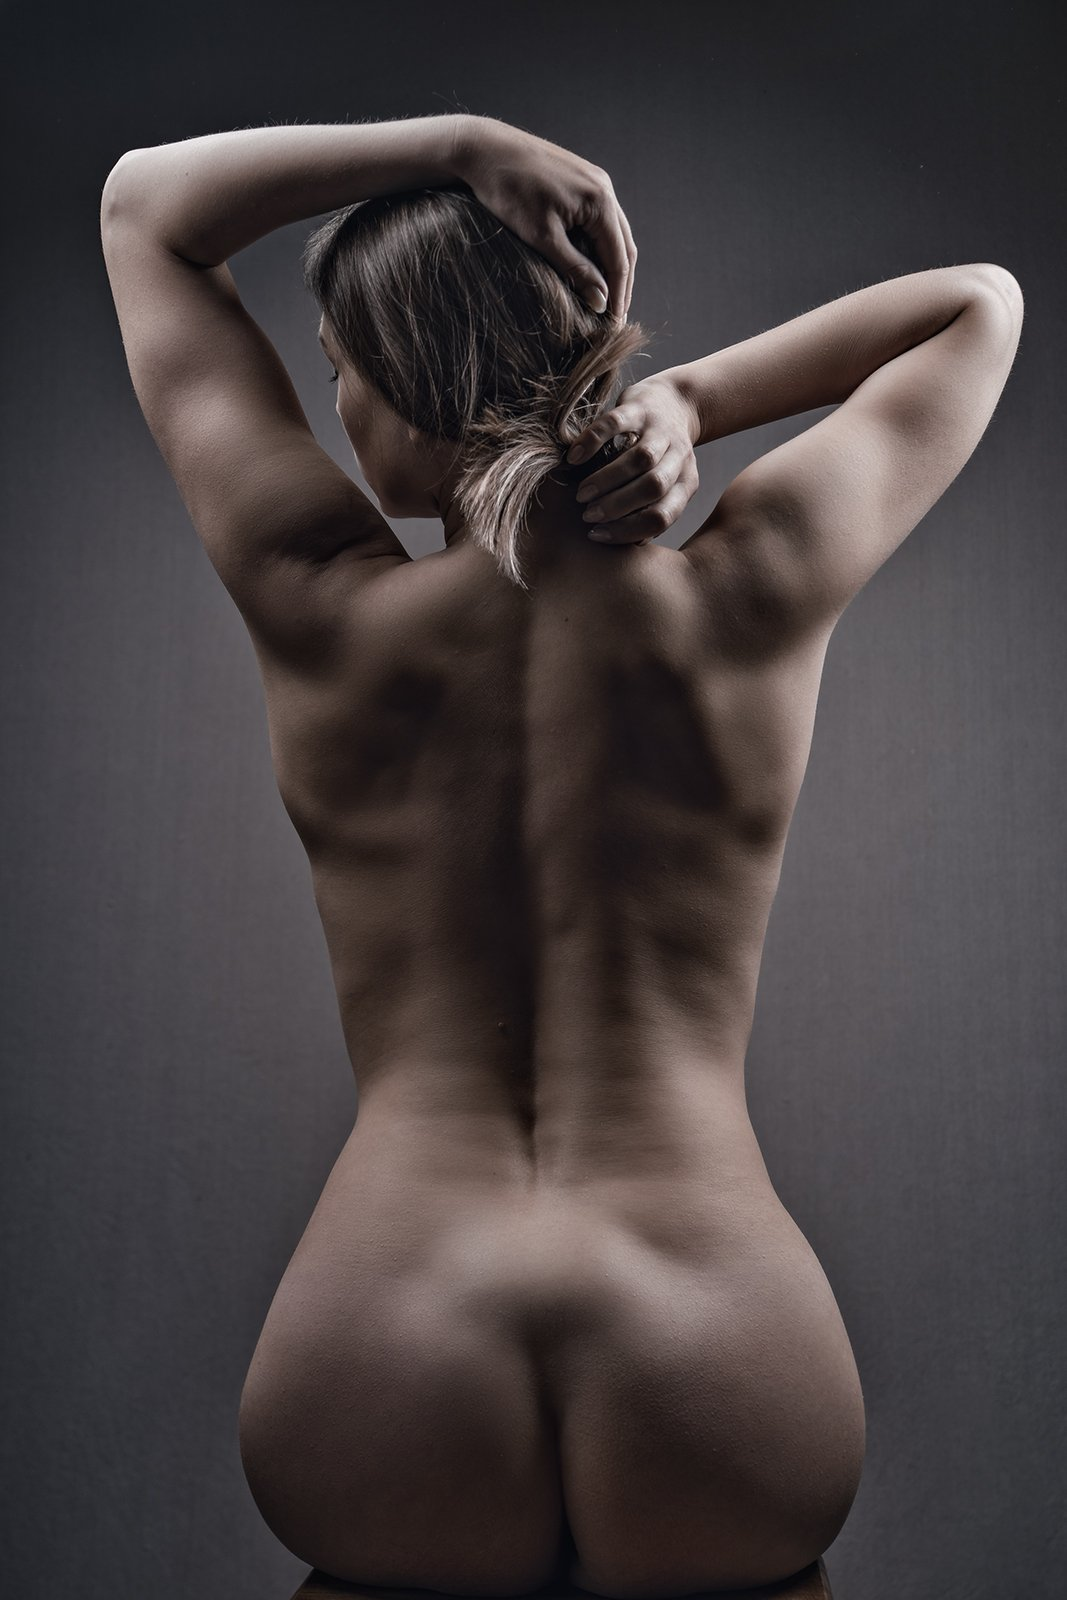 female, portrait, mood, sensuality, dramatic, woman, dark, adult, nude, naked, people, one, person, back, motion, picture, tenderness, dream, butt, sexy, Дмитрий Толоконов